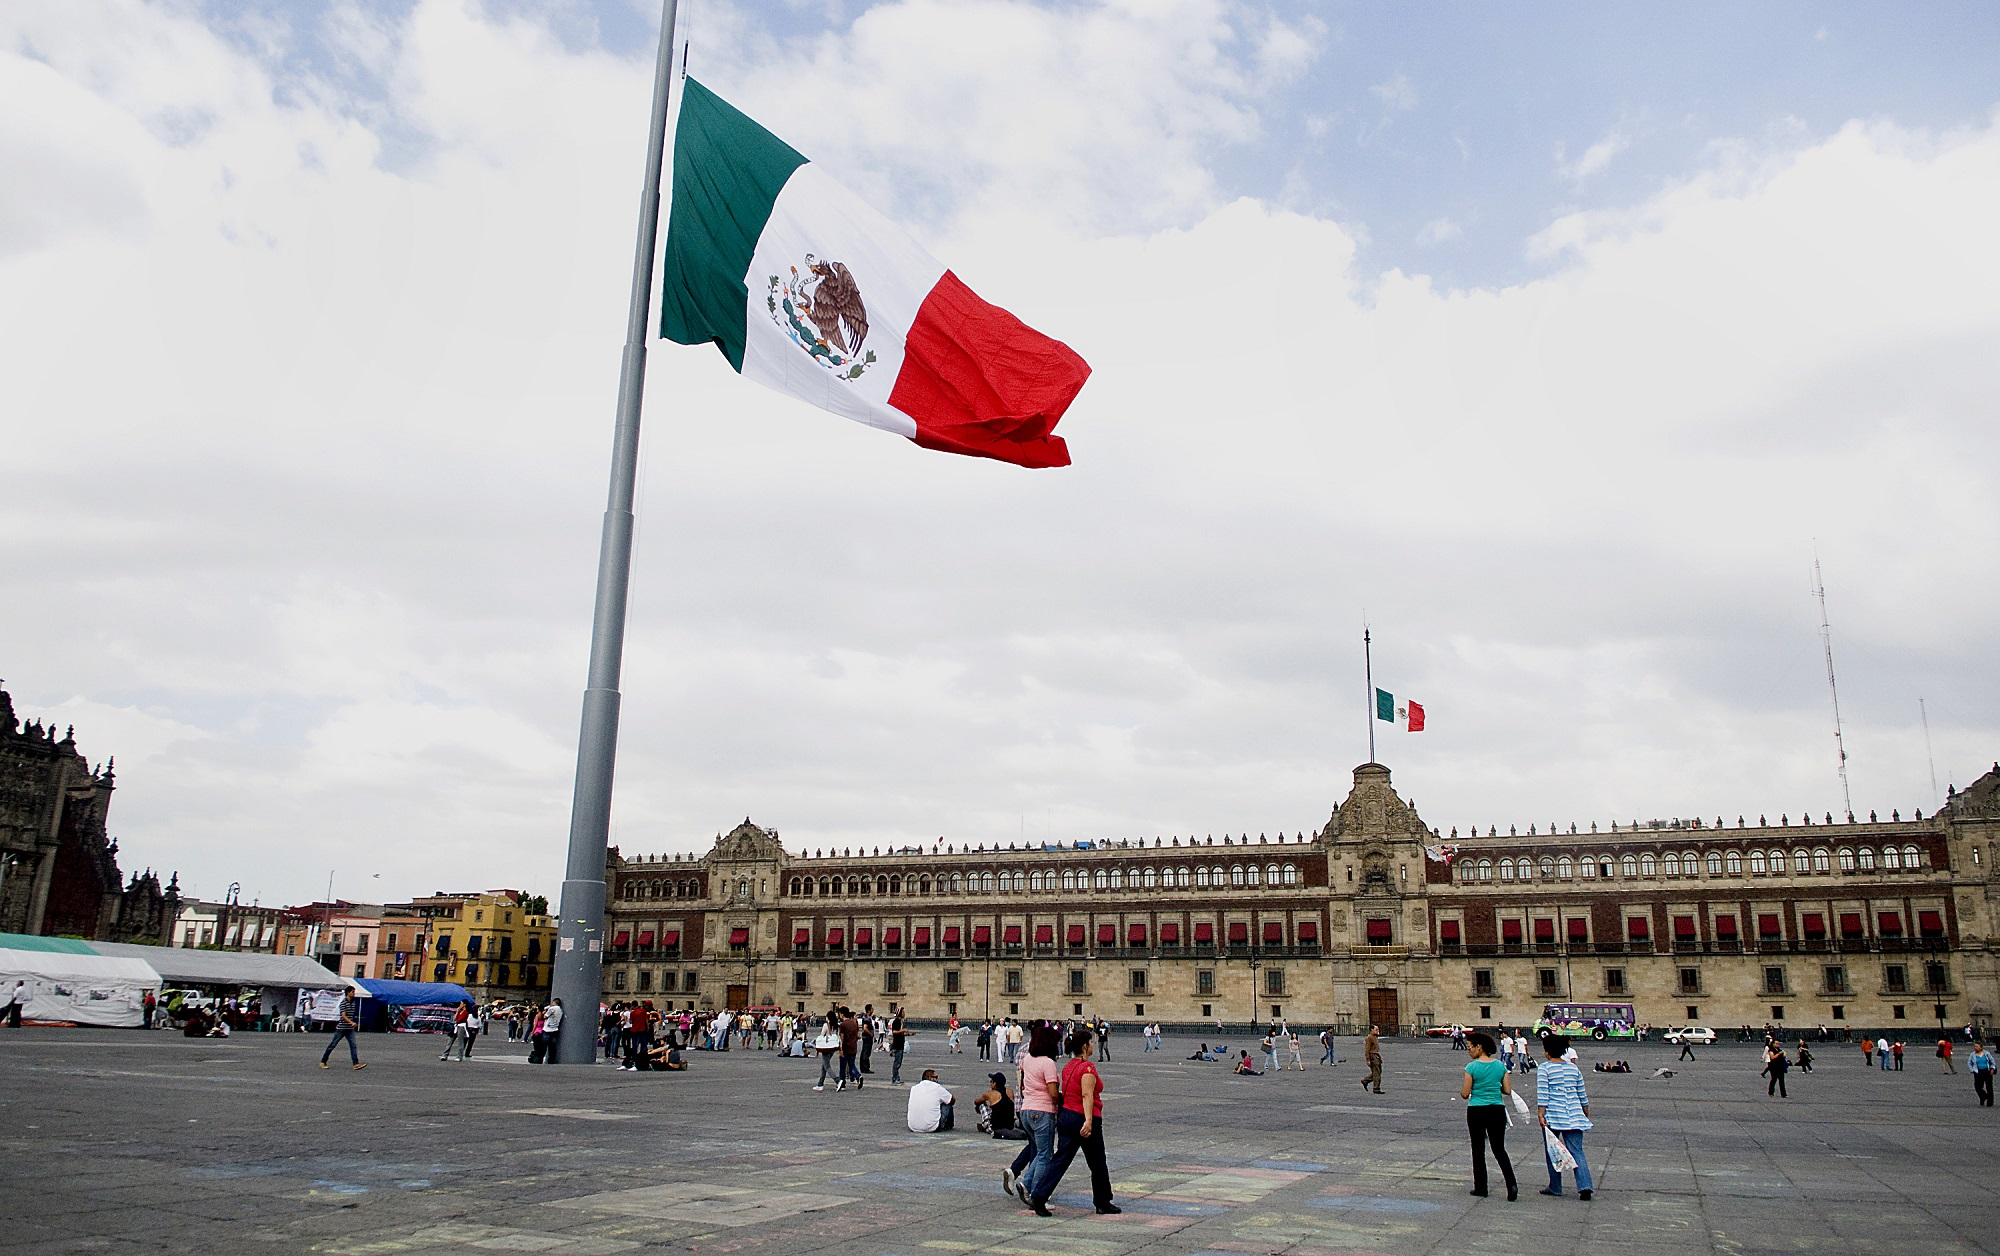 General views of the Z—calo, a plaza in the historic center of Mexico City, Mexico, on Monday, May 21, 2012.